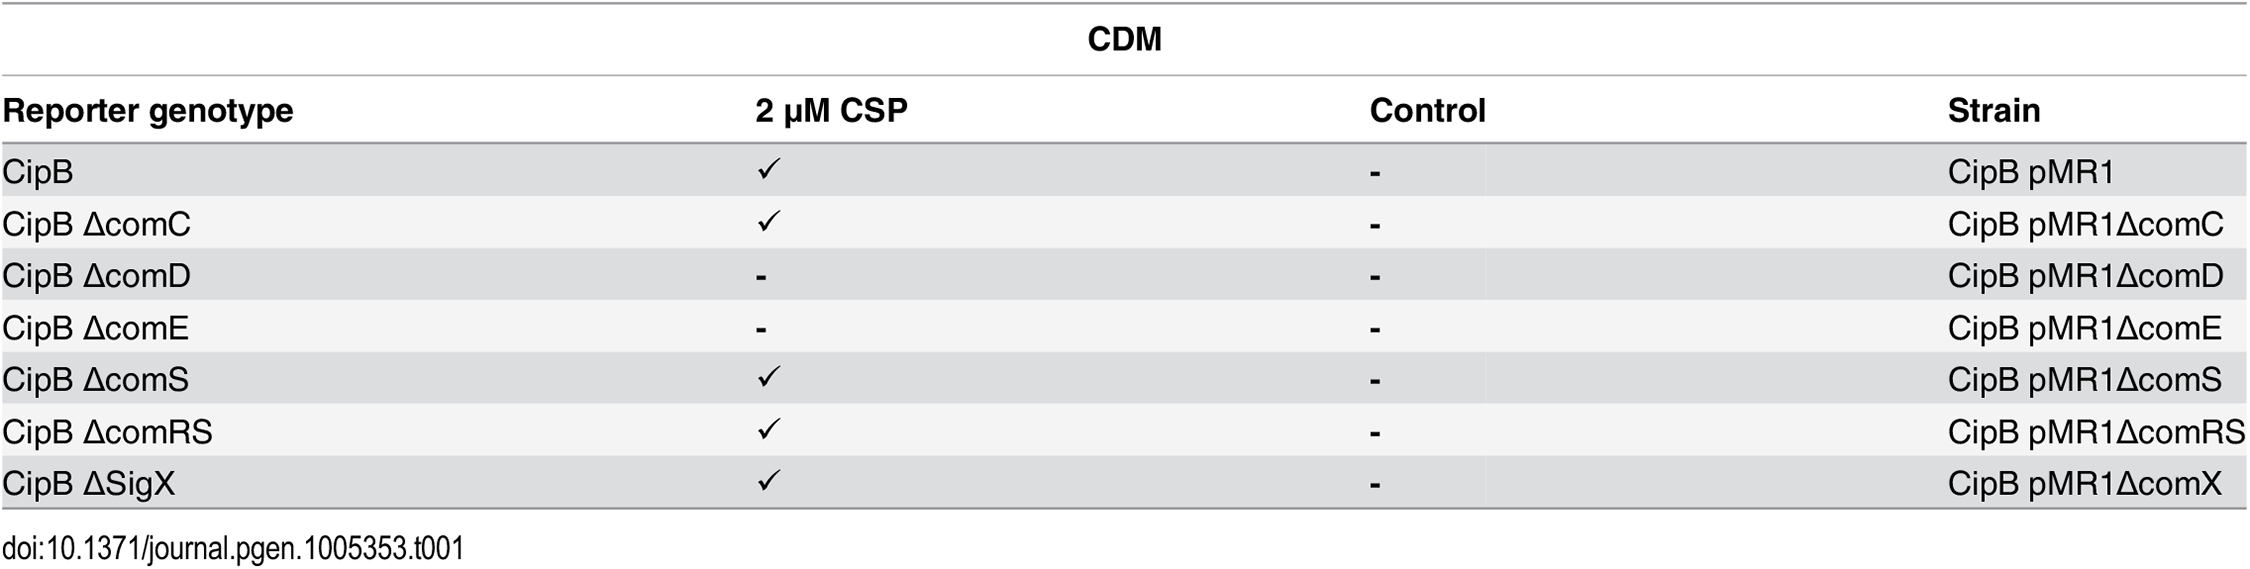 Expression of <i>cipB</i> in different gene deletion background in CDM under CSP induced conditions.